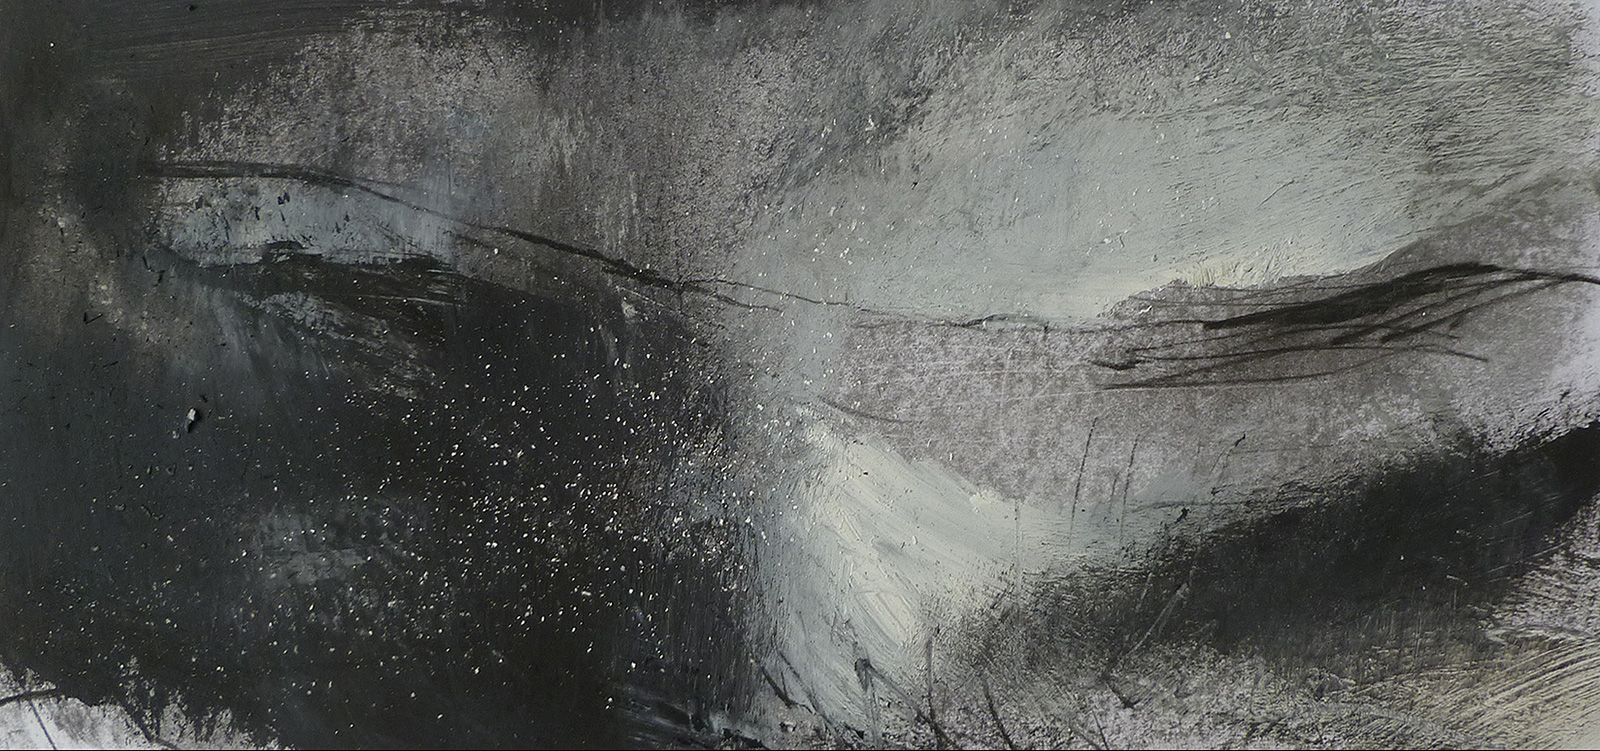 Winter Landscape XVI (23 x 46cm) not for sale